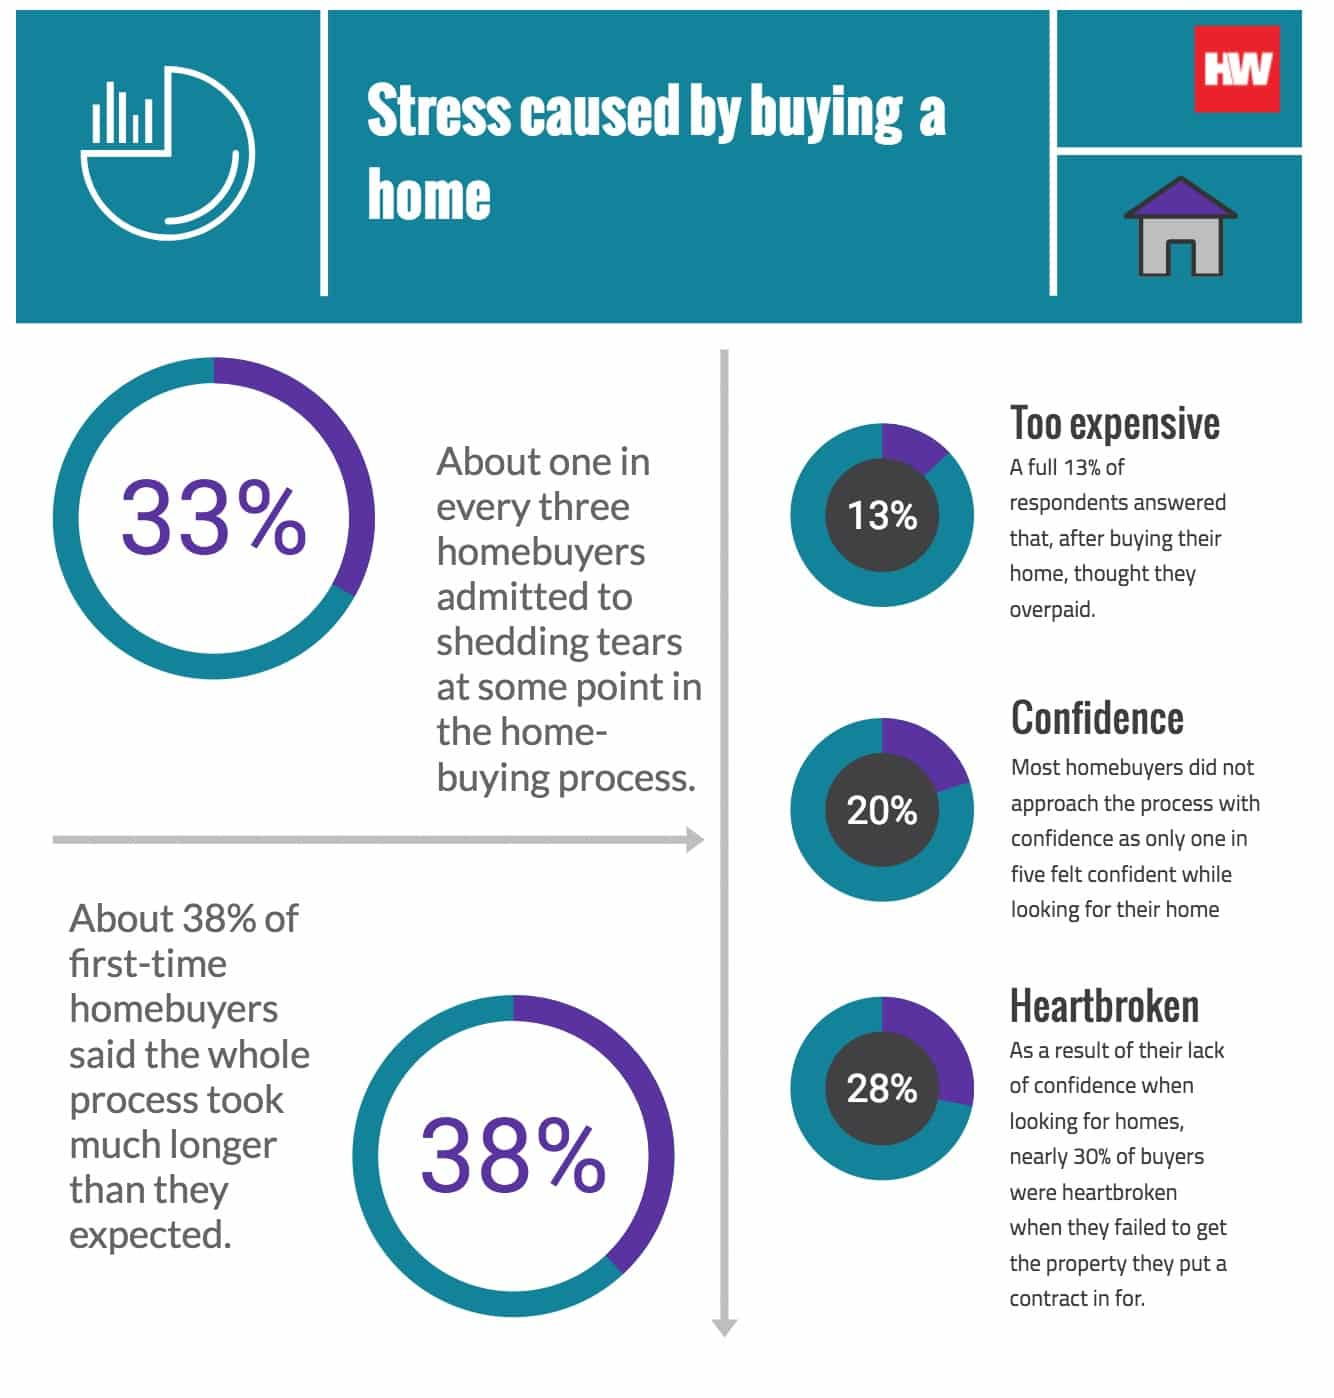 americans_say_buying_a_home_is_most_stressful_event_in_modern_life___2018-08-06___housingwire_